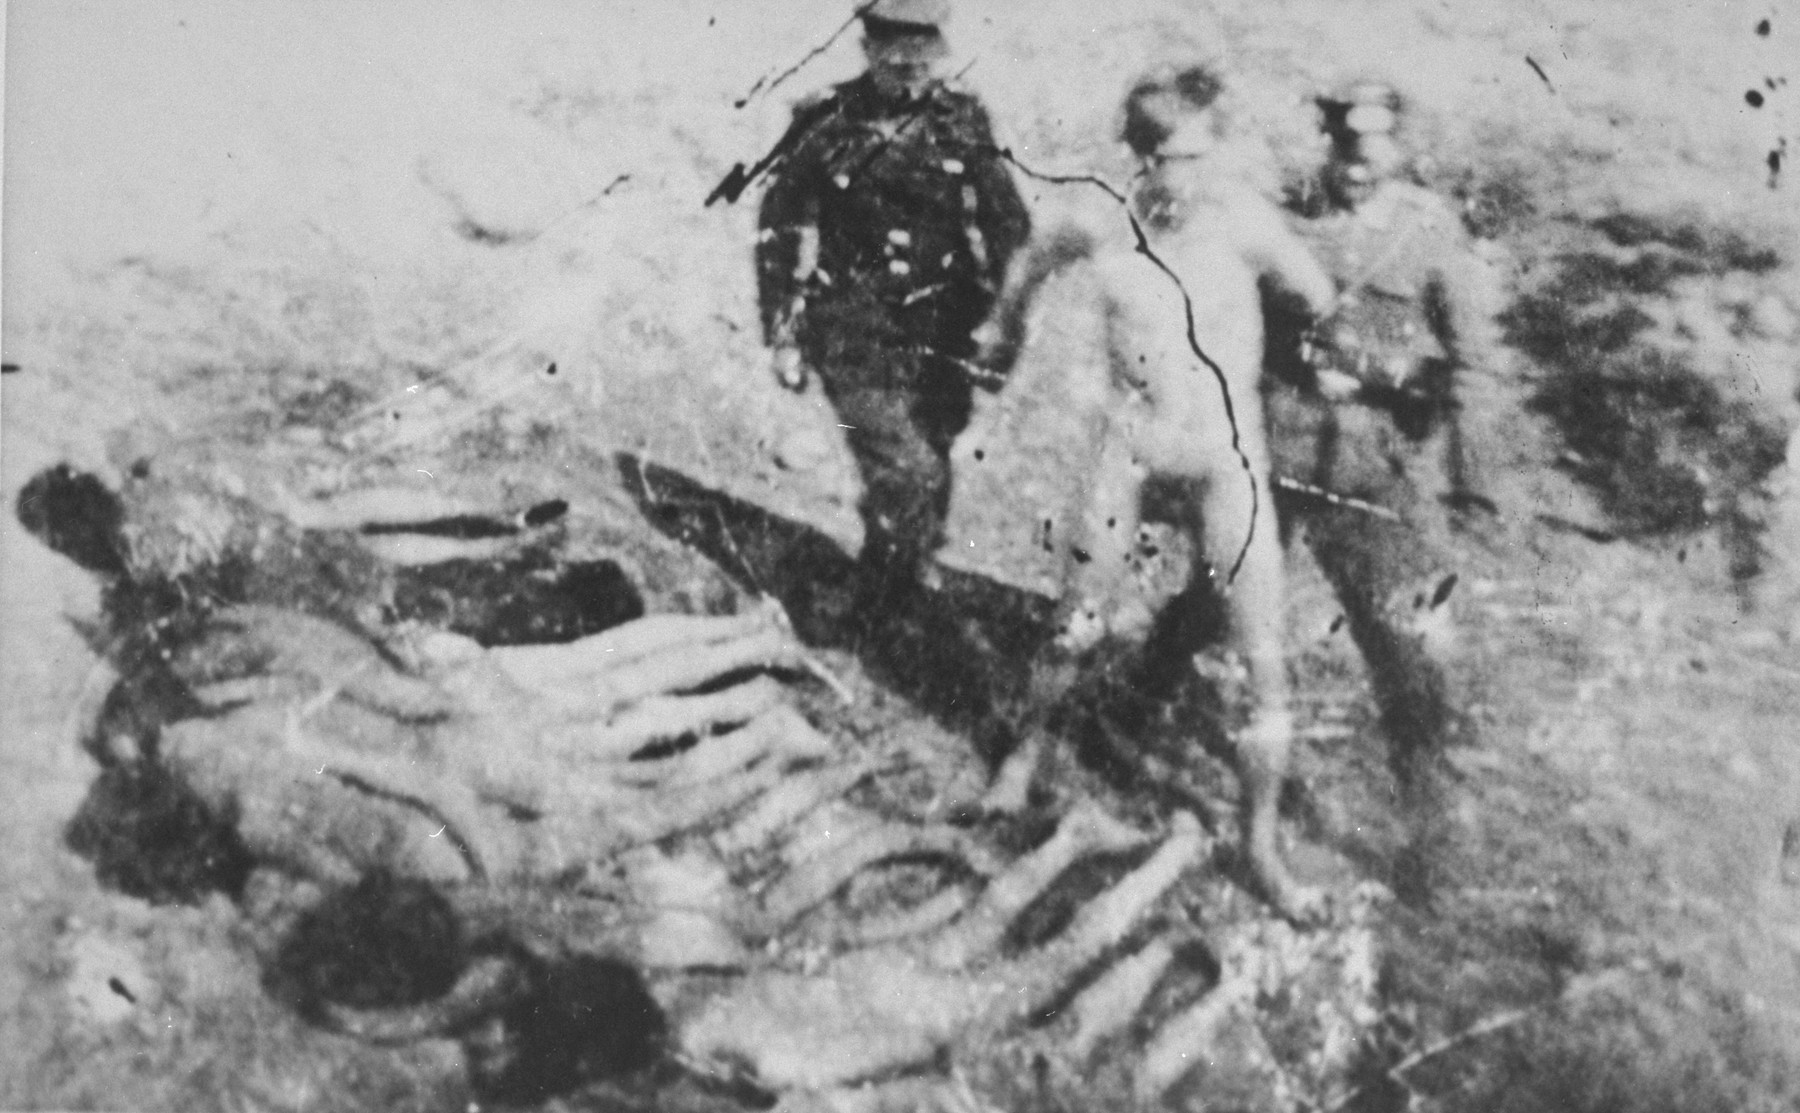 A naked prisoner is led to an execution site, possbily Ponary, where others either have been shot already or forced to lie face down prior to being shot.